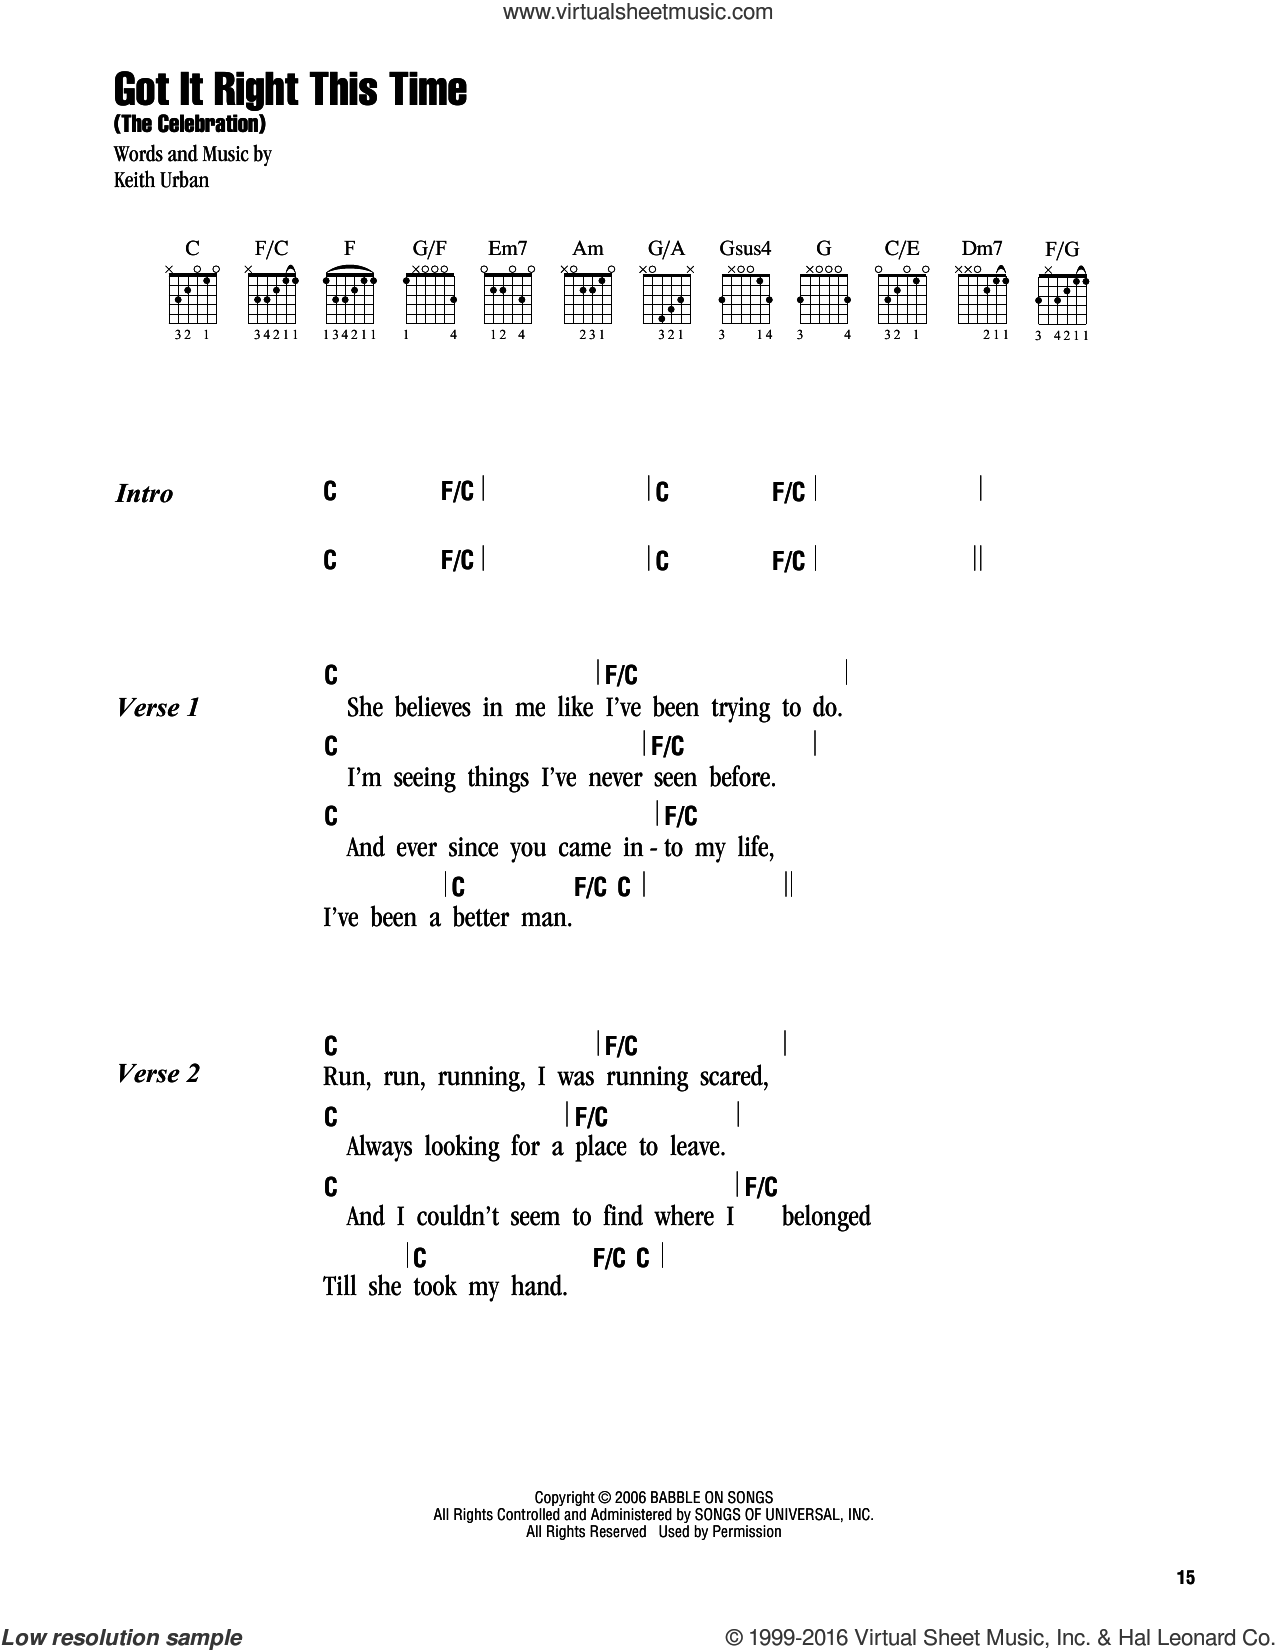 Got It Right This Time (The Celebration) sheet music for guitar (chords) by Keith Urban, intermediate